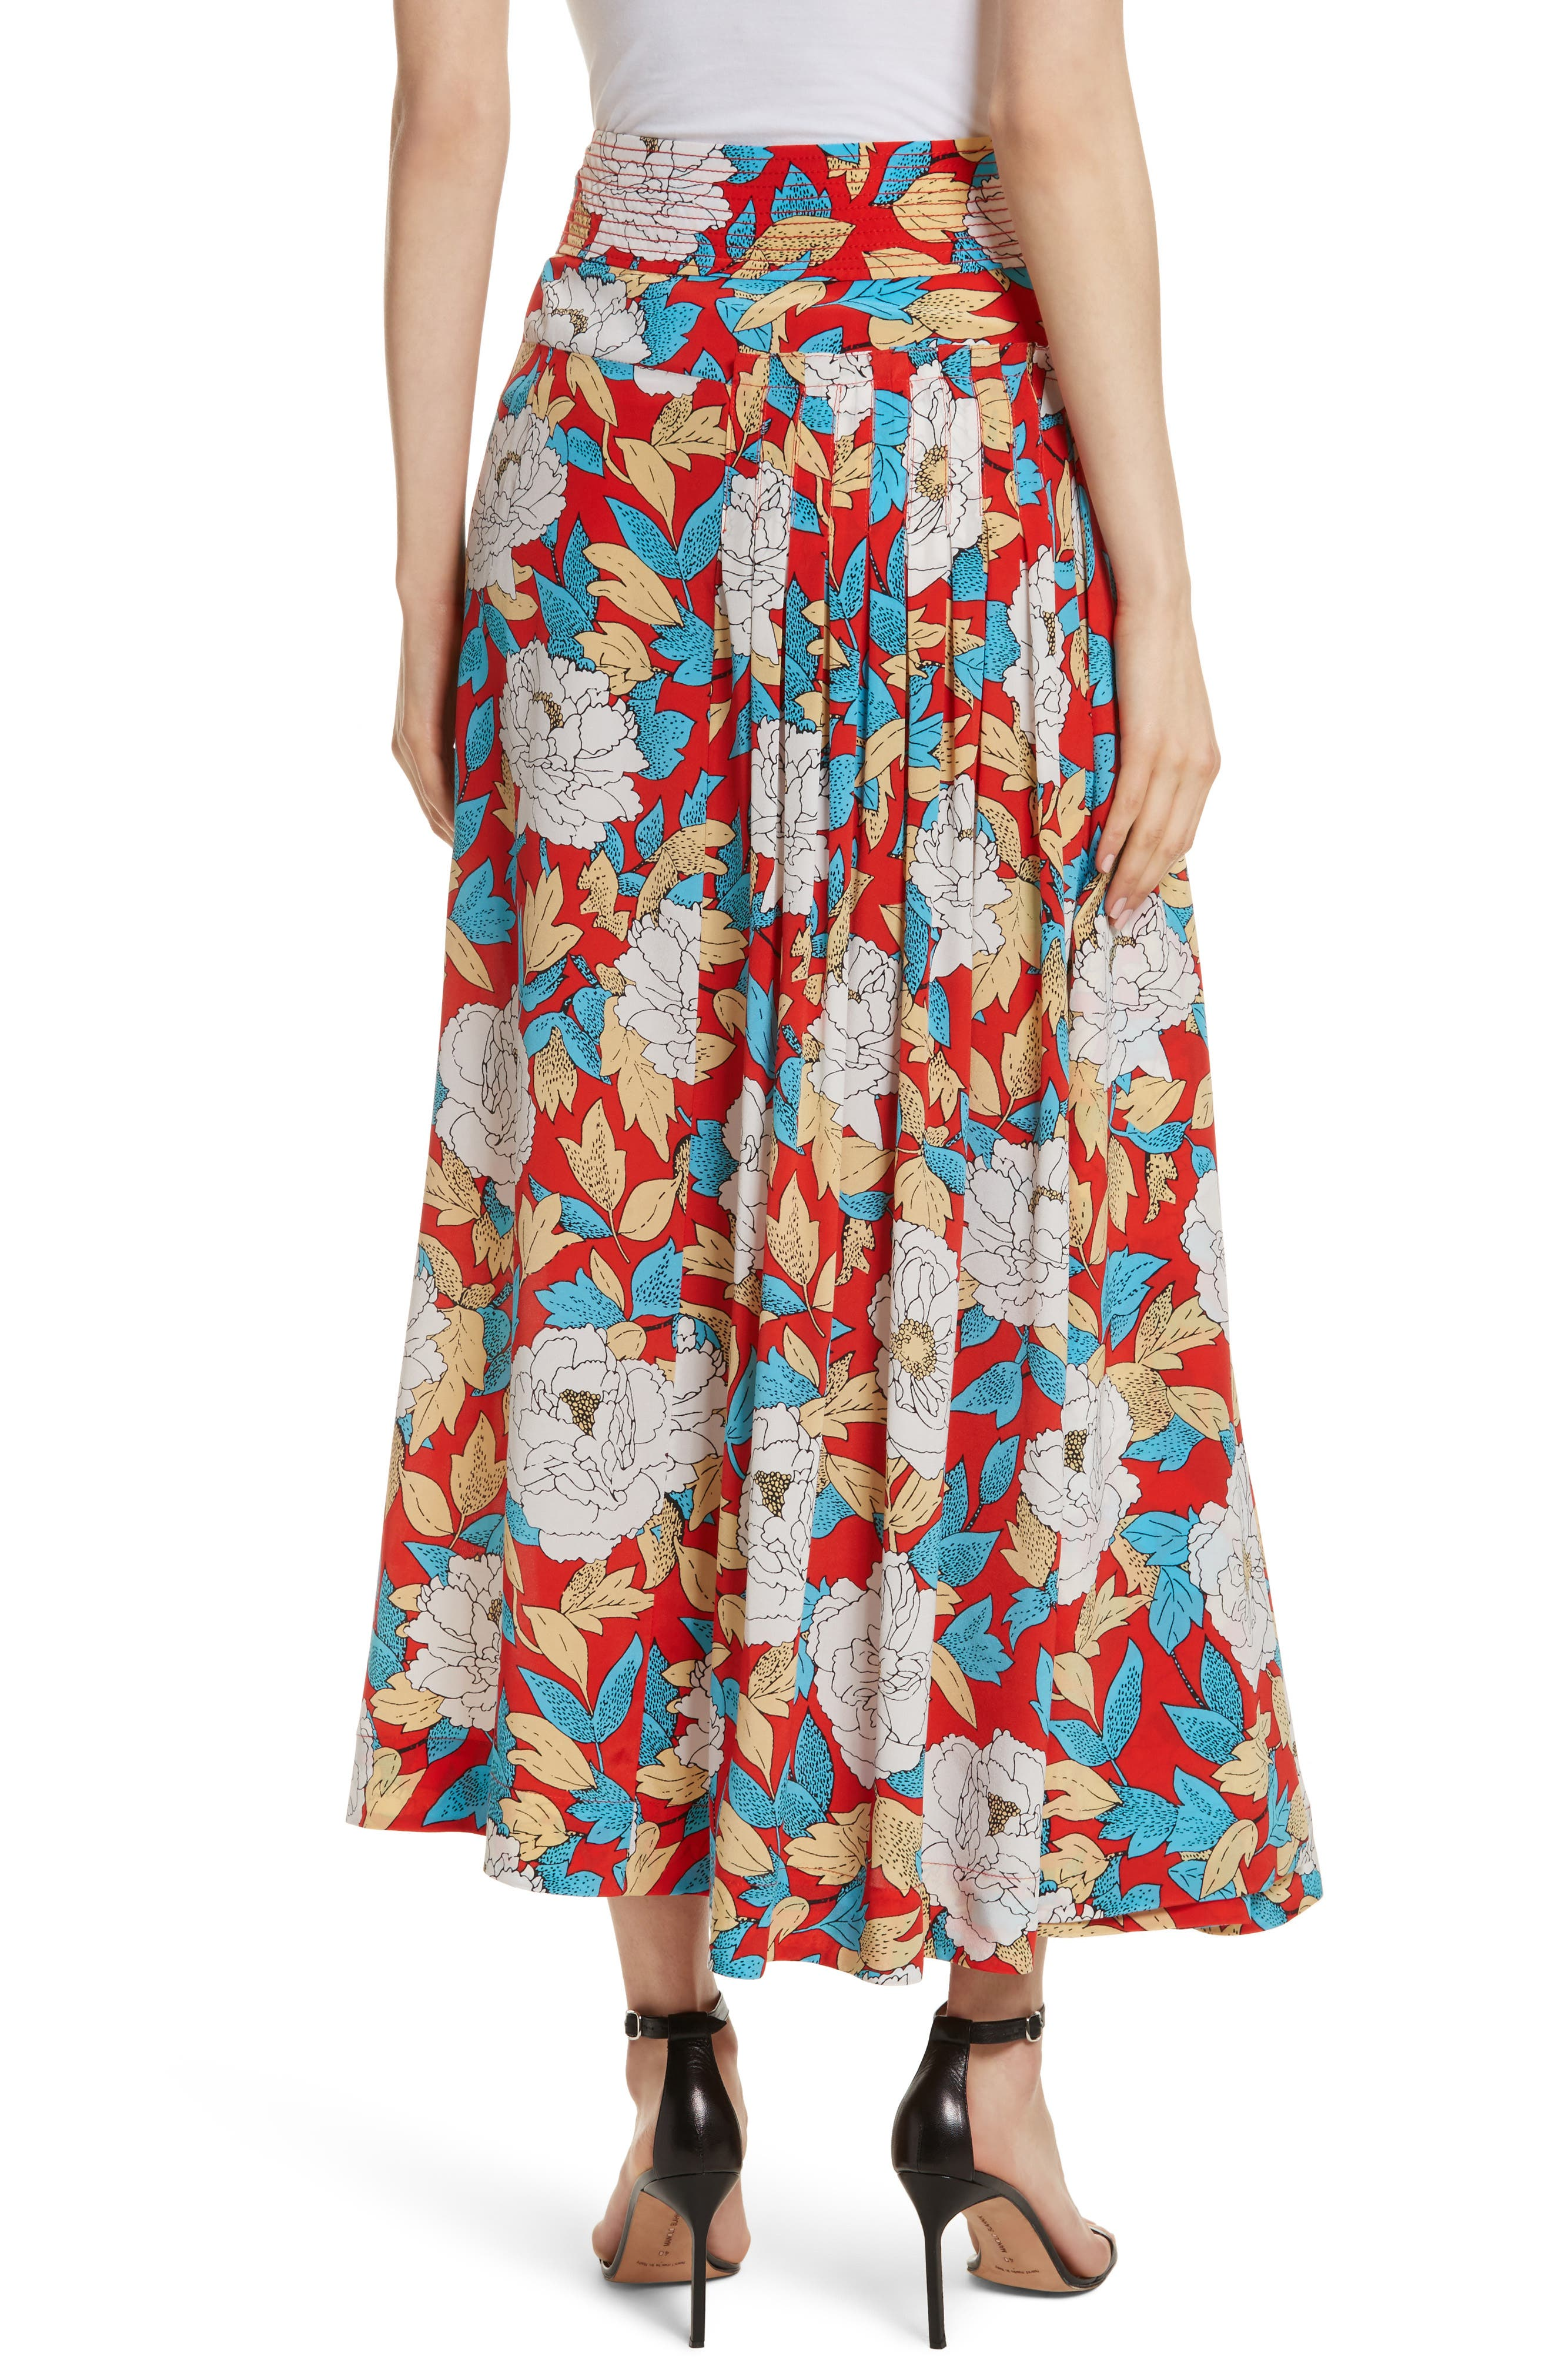 Diane von Furstenberg Floral Silk Midi Skirt,                             Alternate thumbnail 2, color,                             600